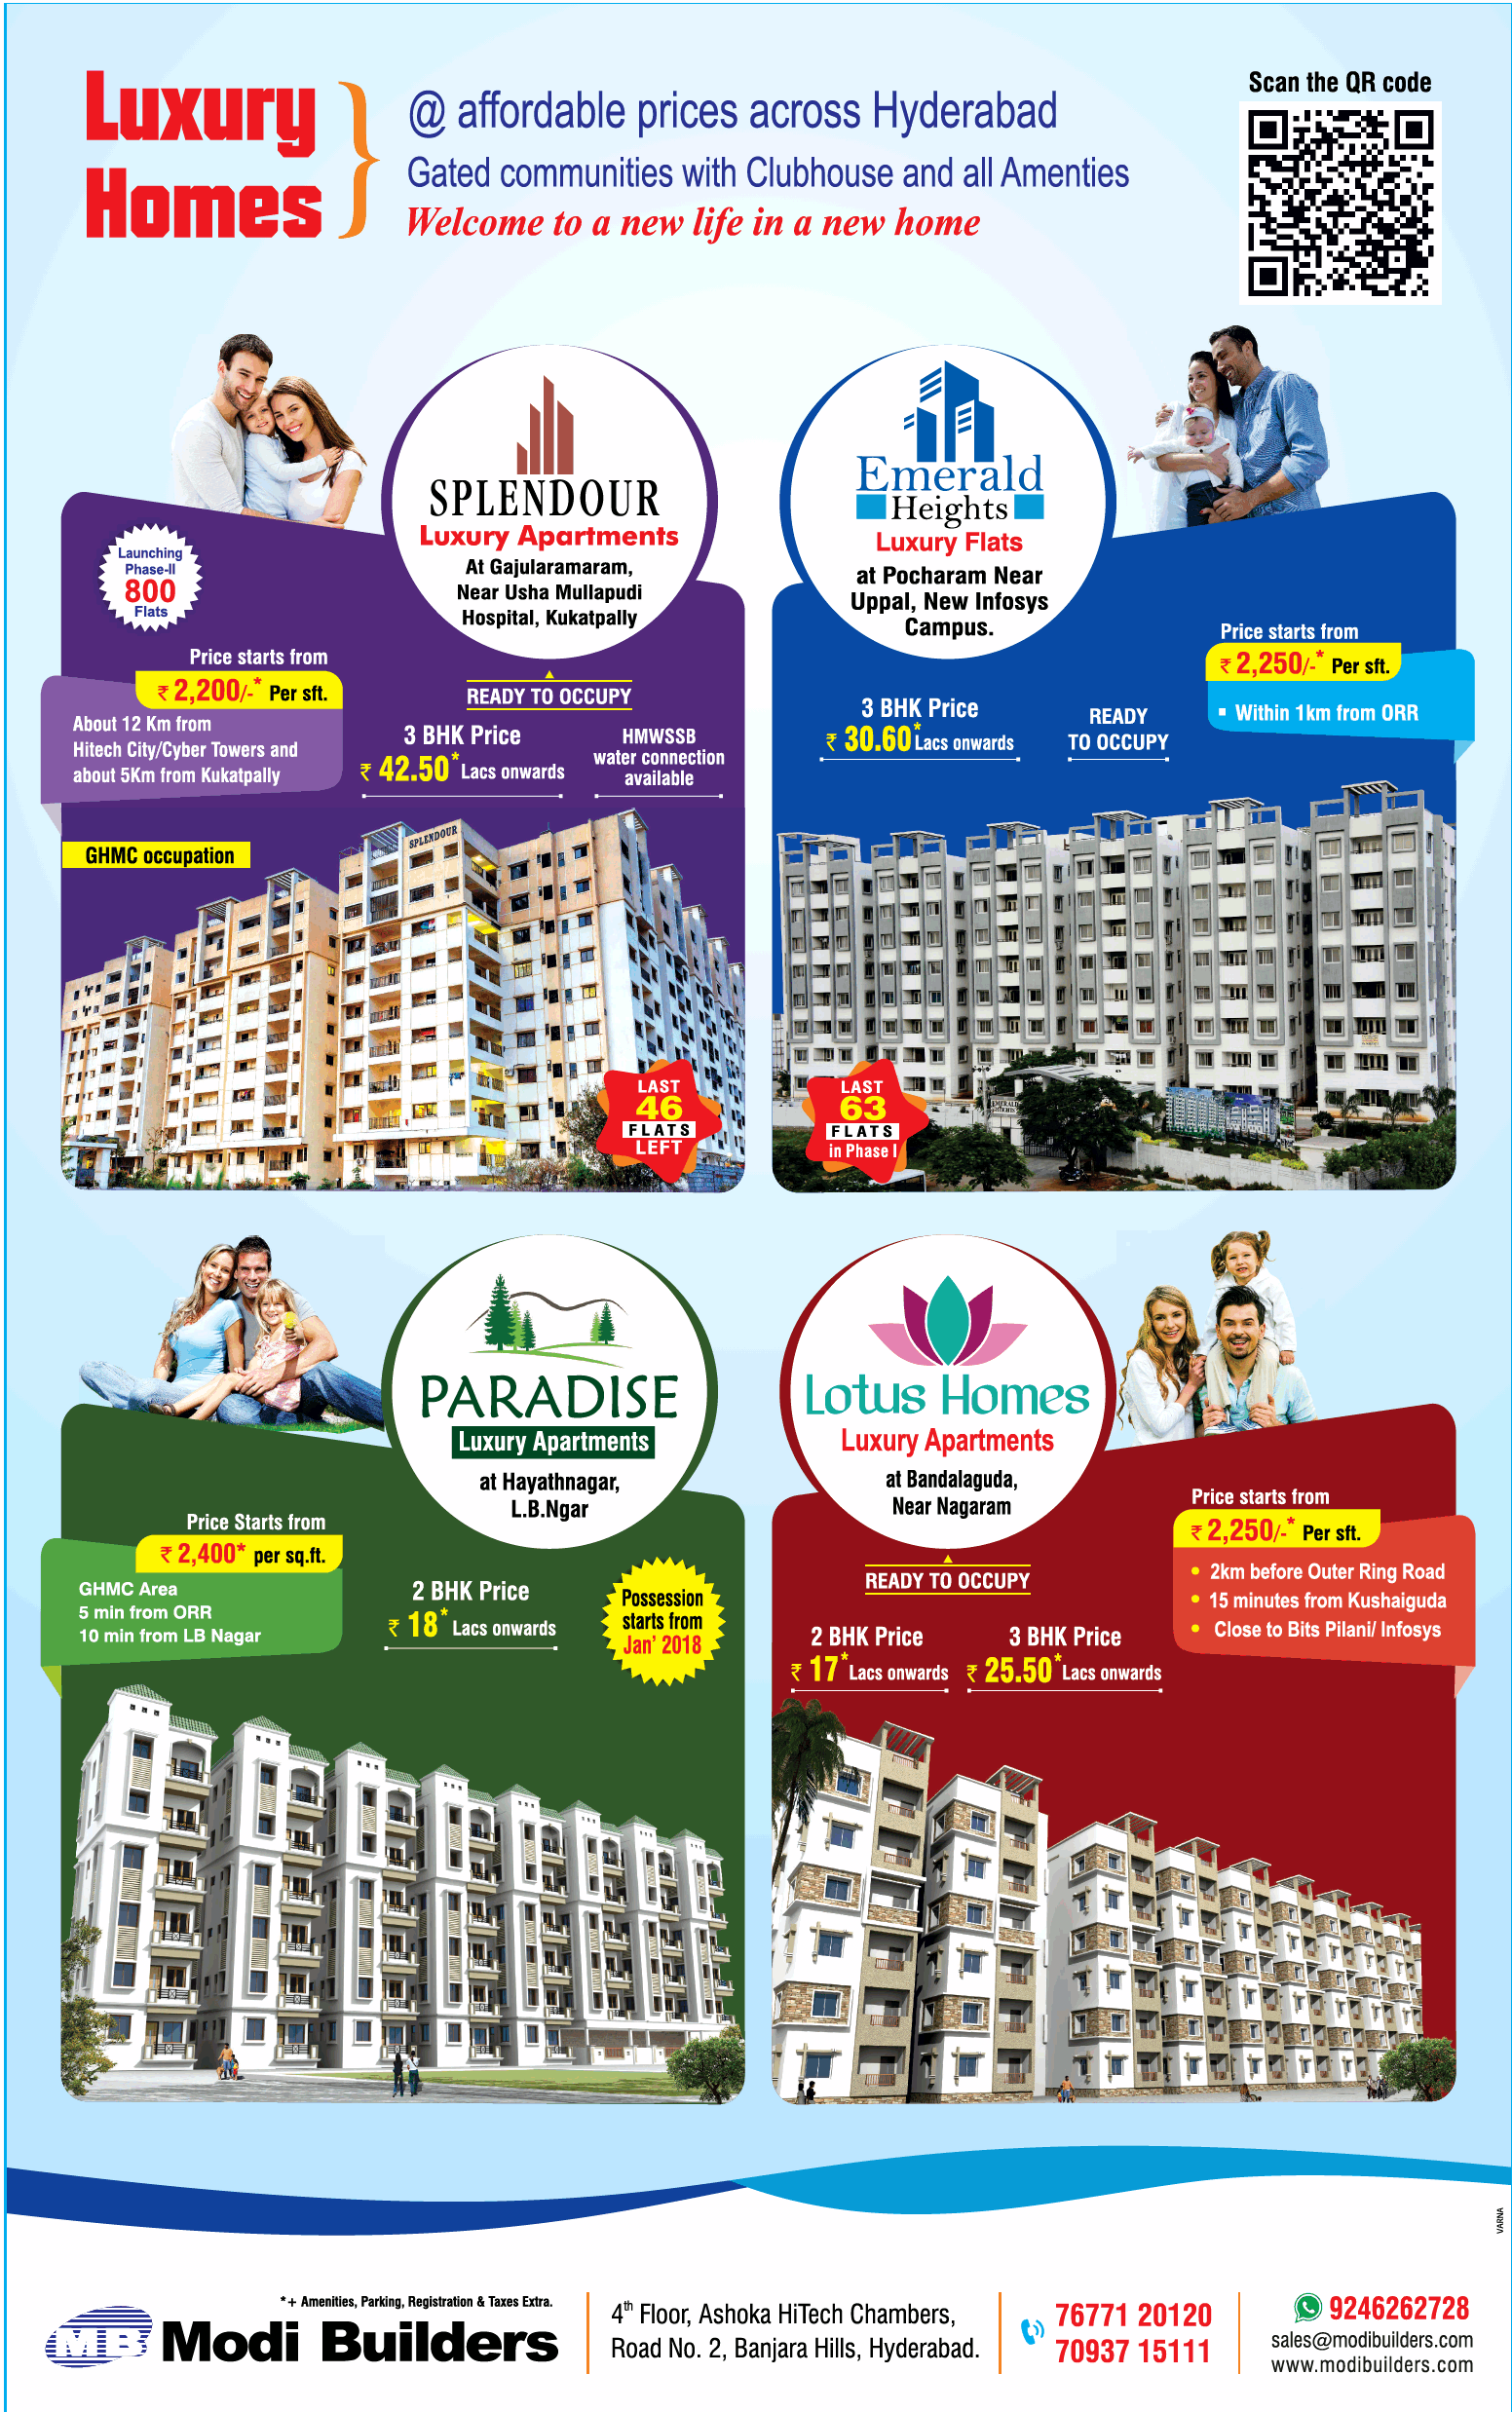 Modi Builders Luxury Homes At Affordable Prices Across Hyderabad Ad